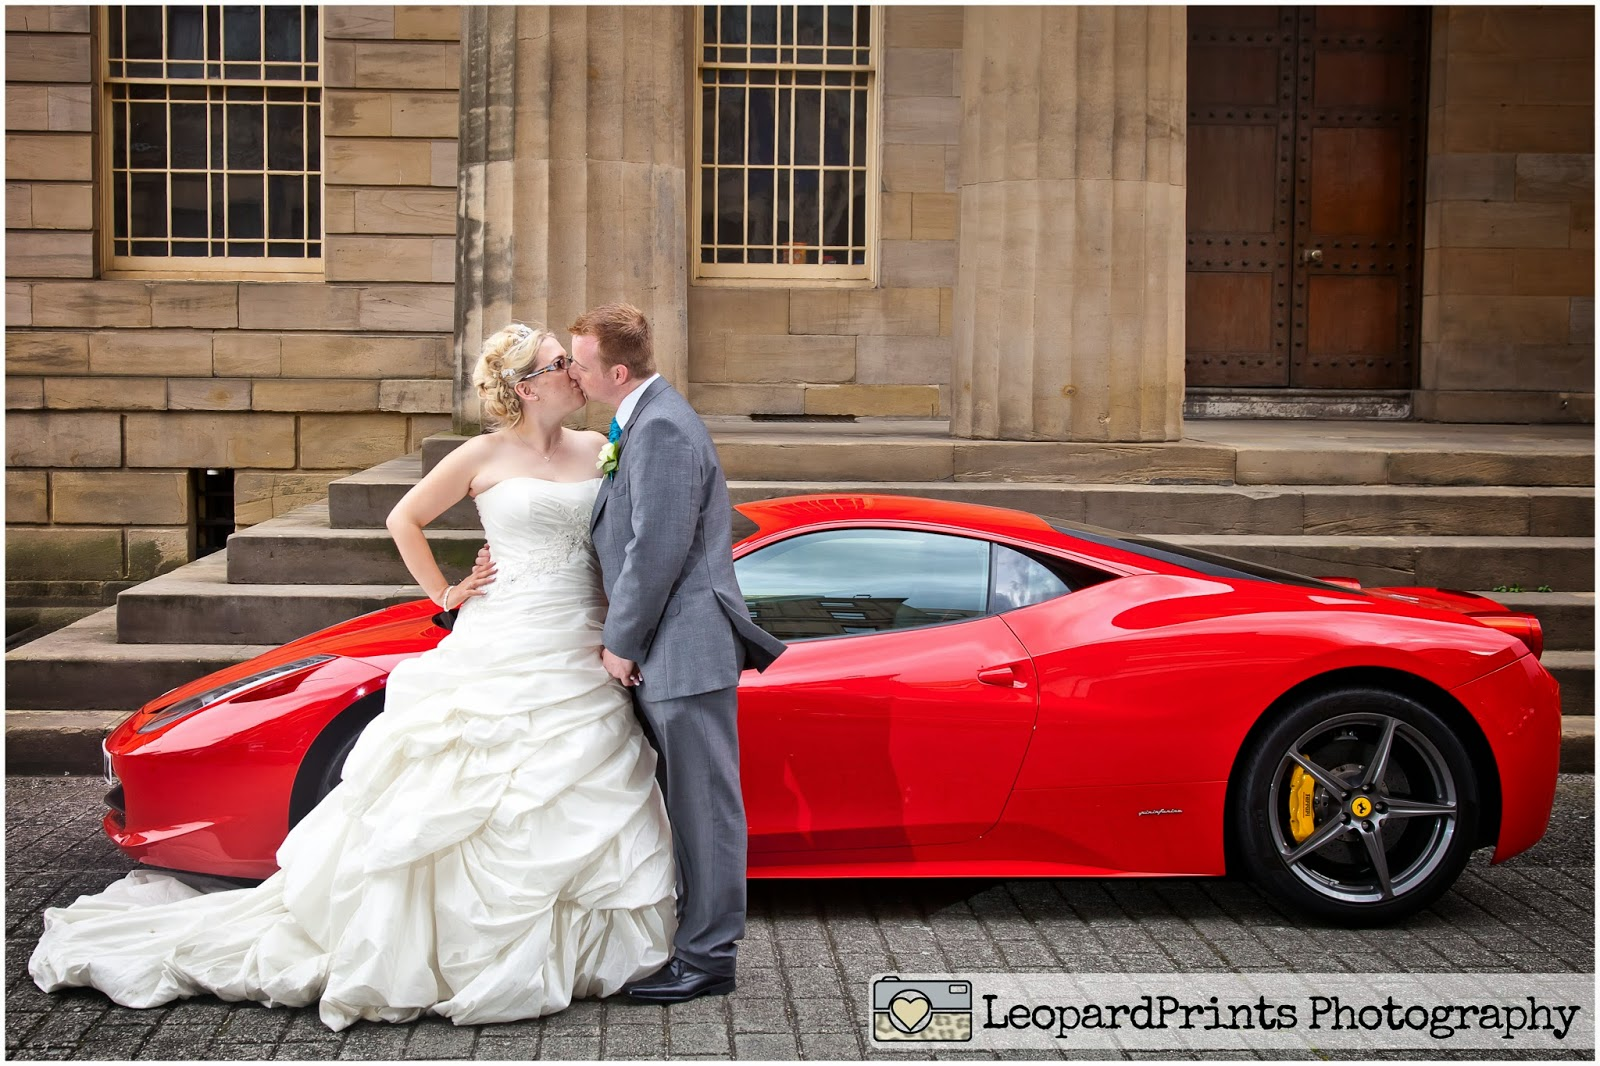 Wedding Photography At The Vermont Hotel, Newcastle